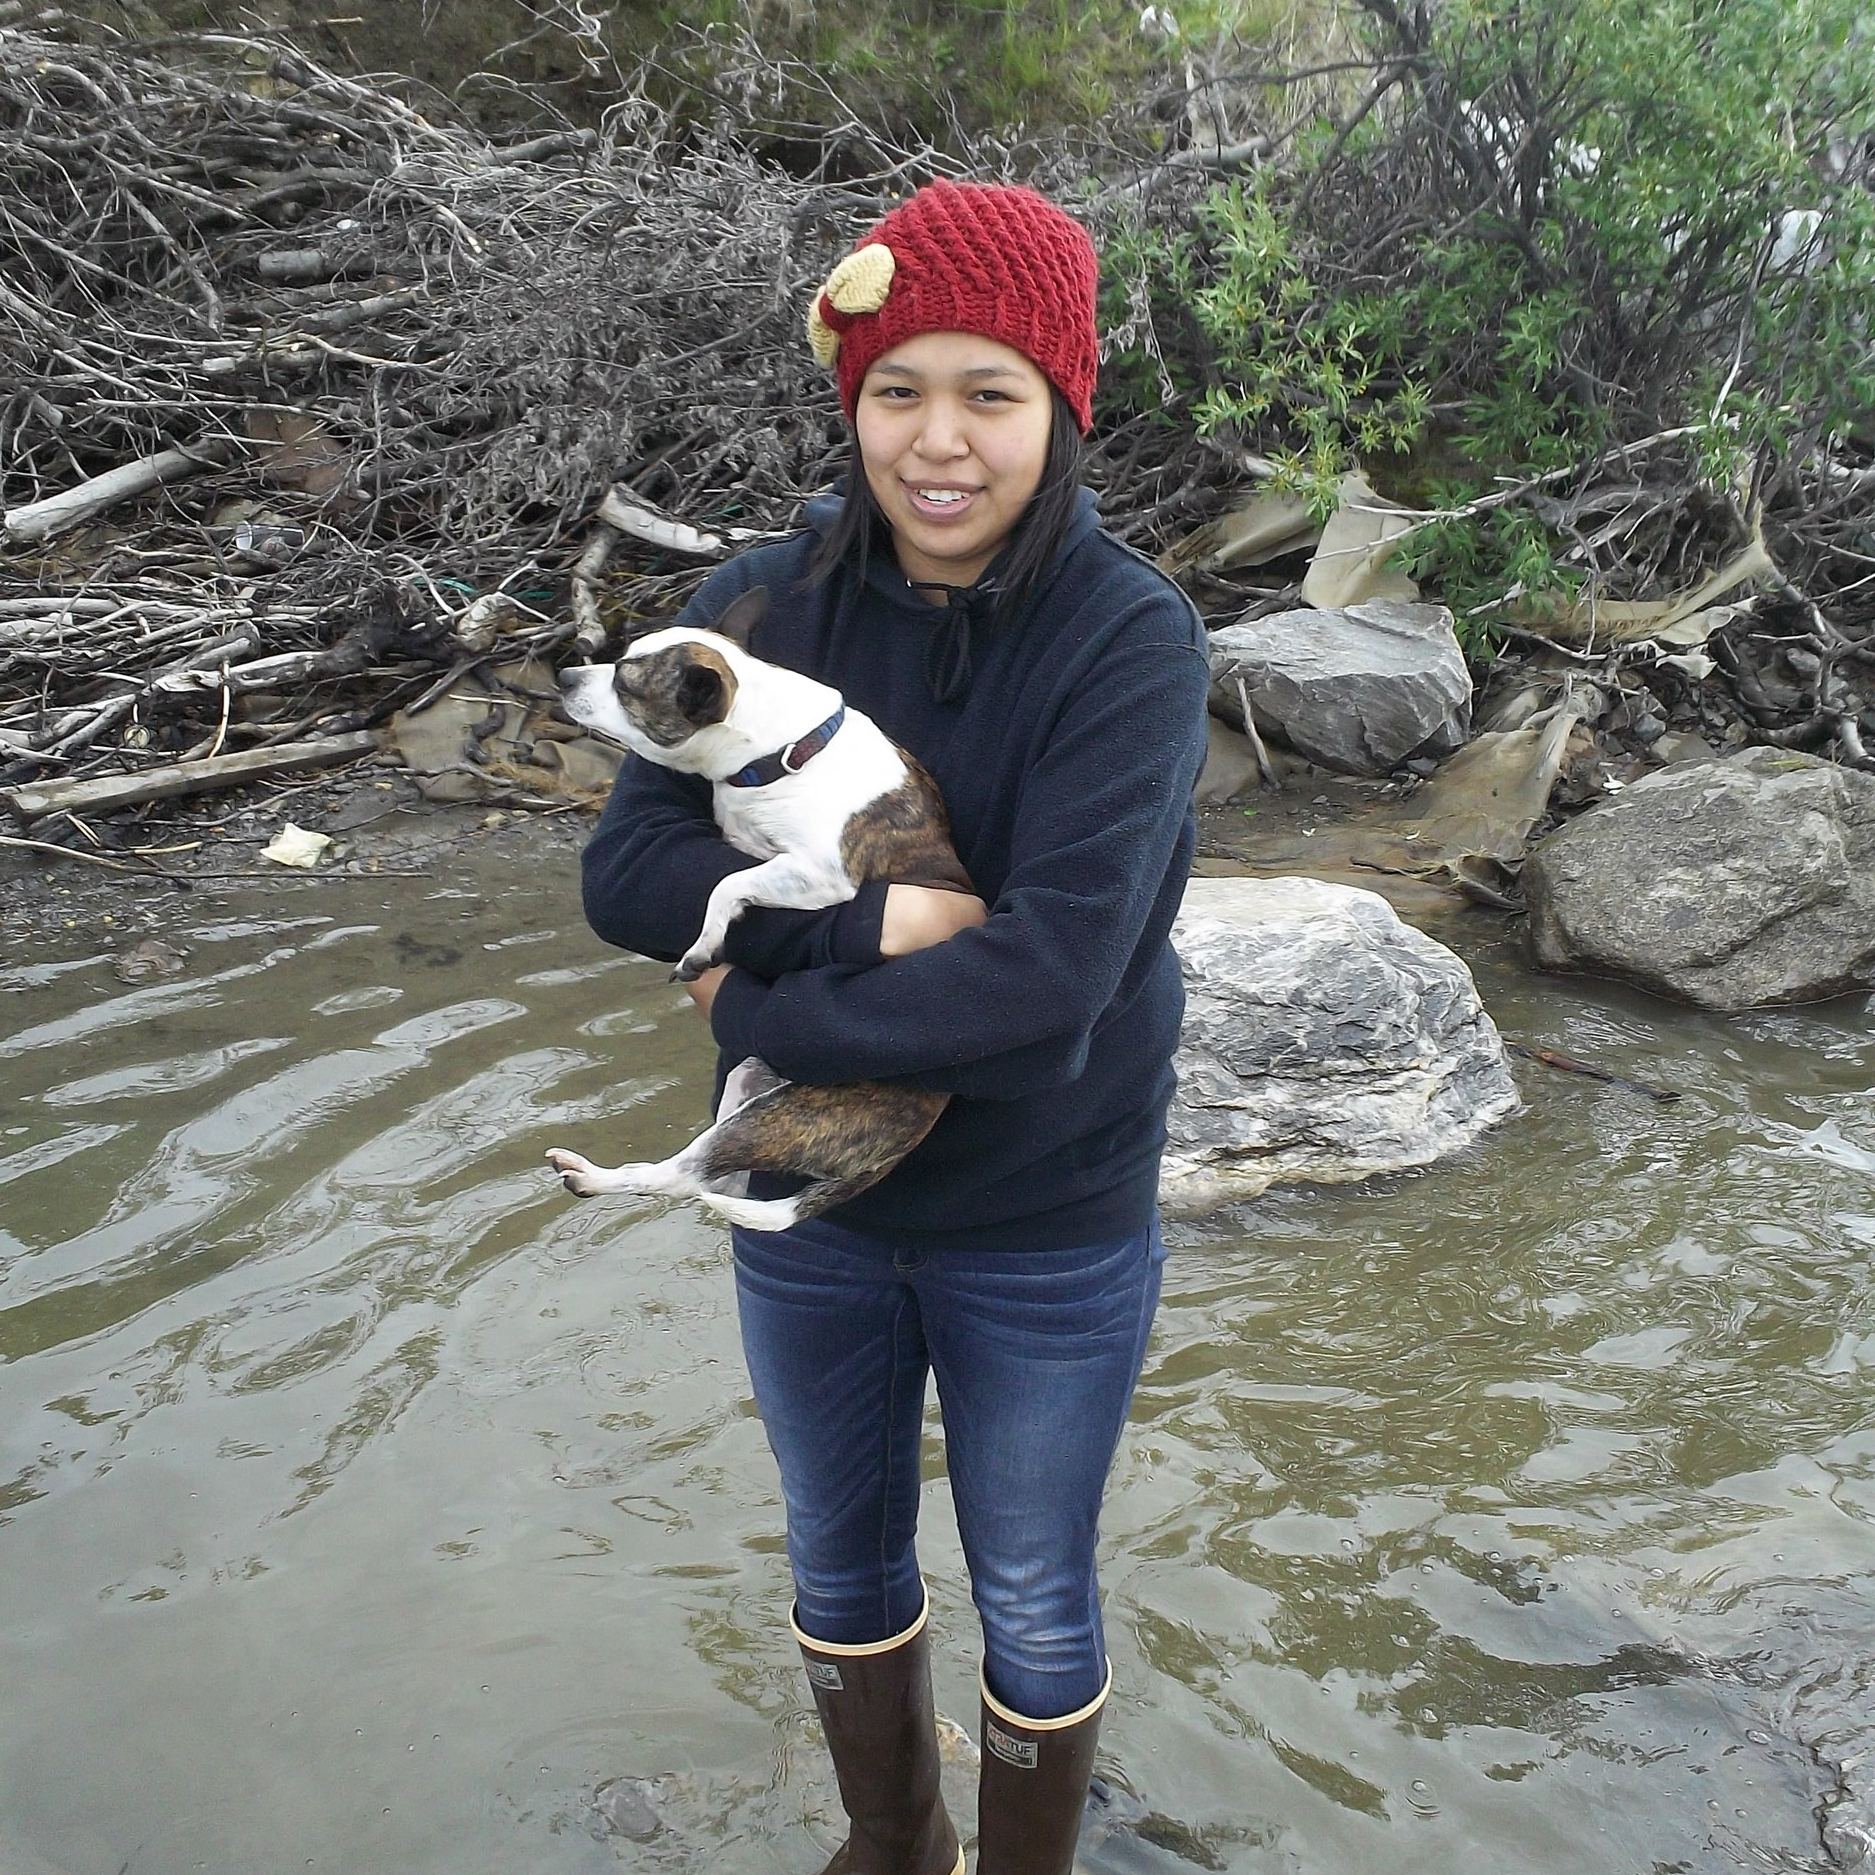 Clarissa and her new dog.